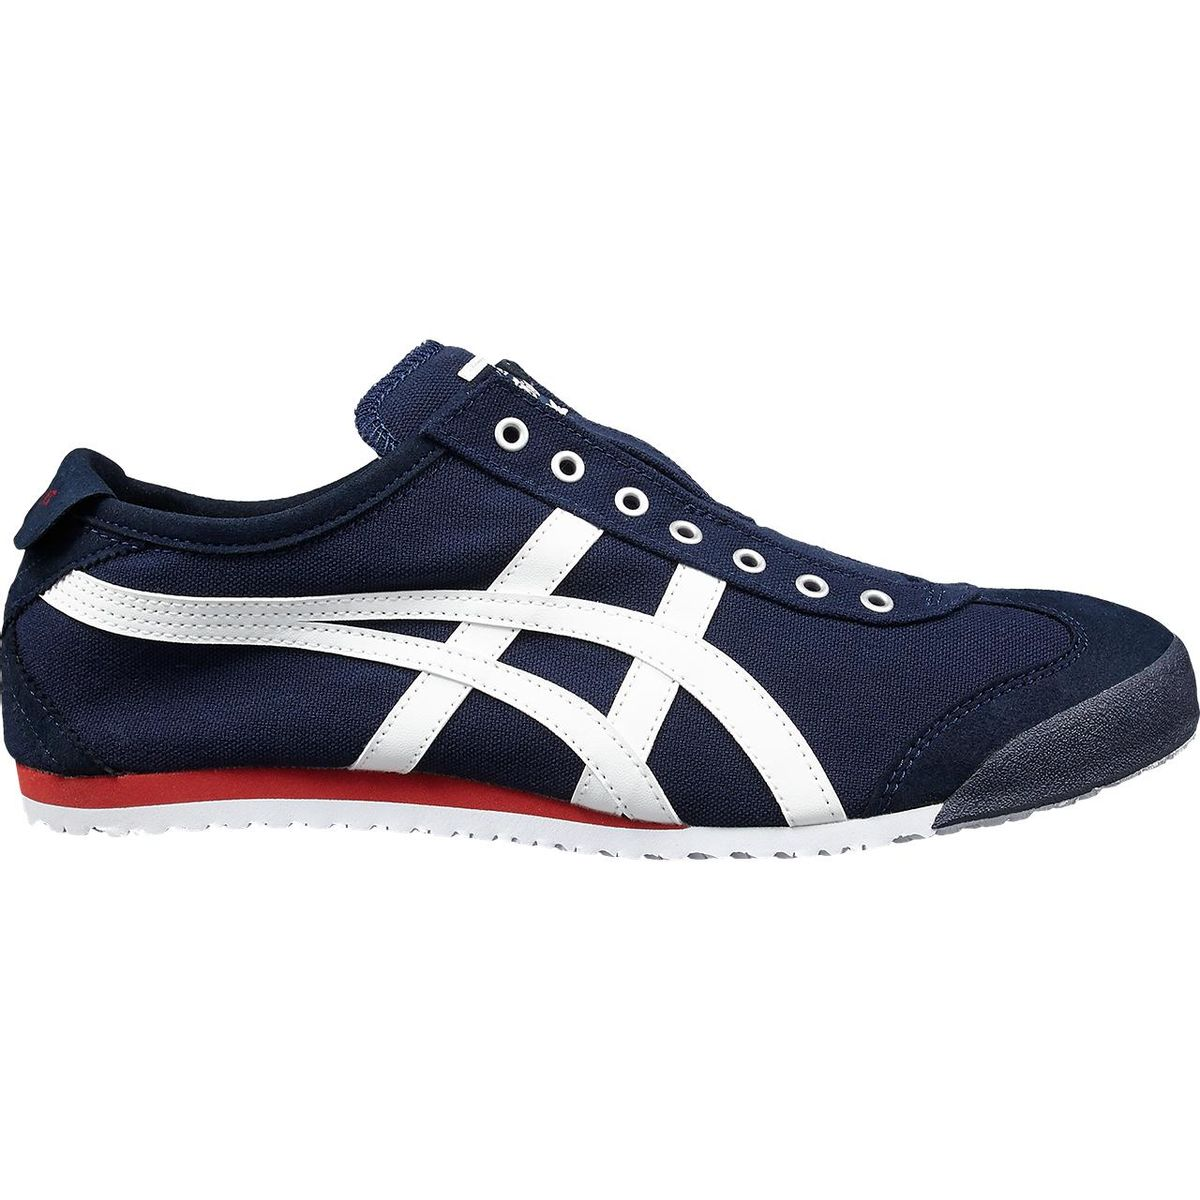 Tenis-Onitsuka-Tiger-Mexico-66-Slip-On